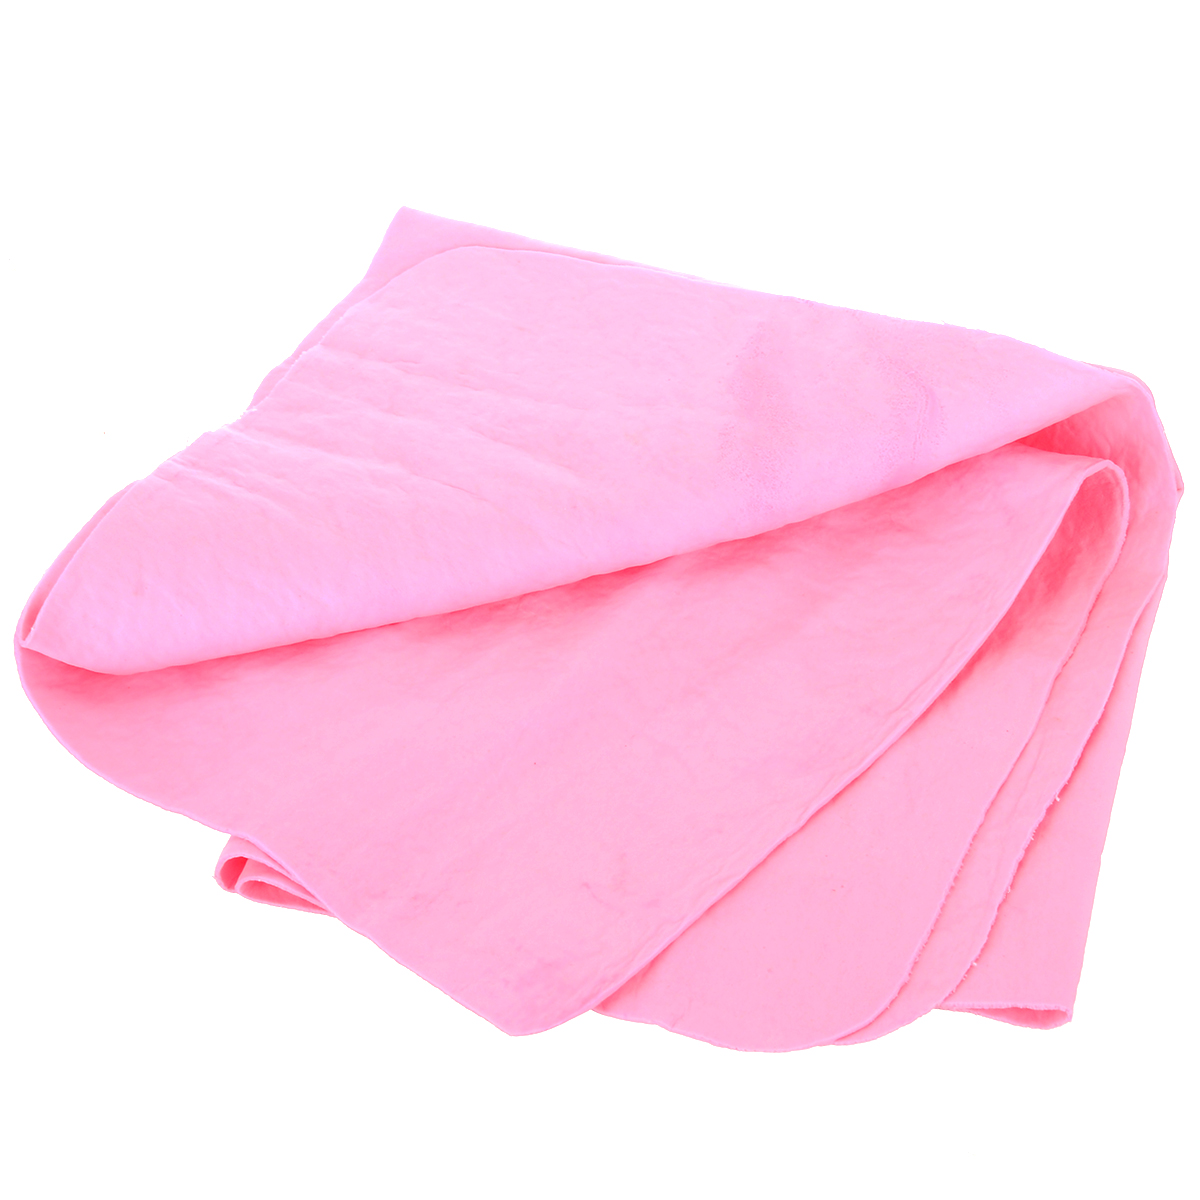 Image 2 - New Arrival 64*43cm Car Magic Washing Drying Cloth Cleaning Chamois Leather Soft PVA Towel Wipes Clean Cham Quick Dry Towel-in Sponges, Cloths & Brushes from Automobiles & Motorcycles